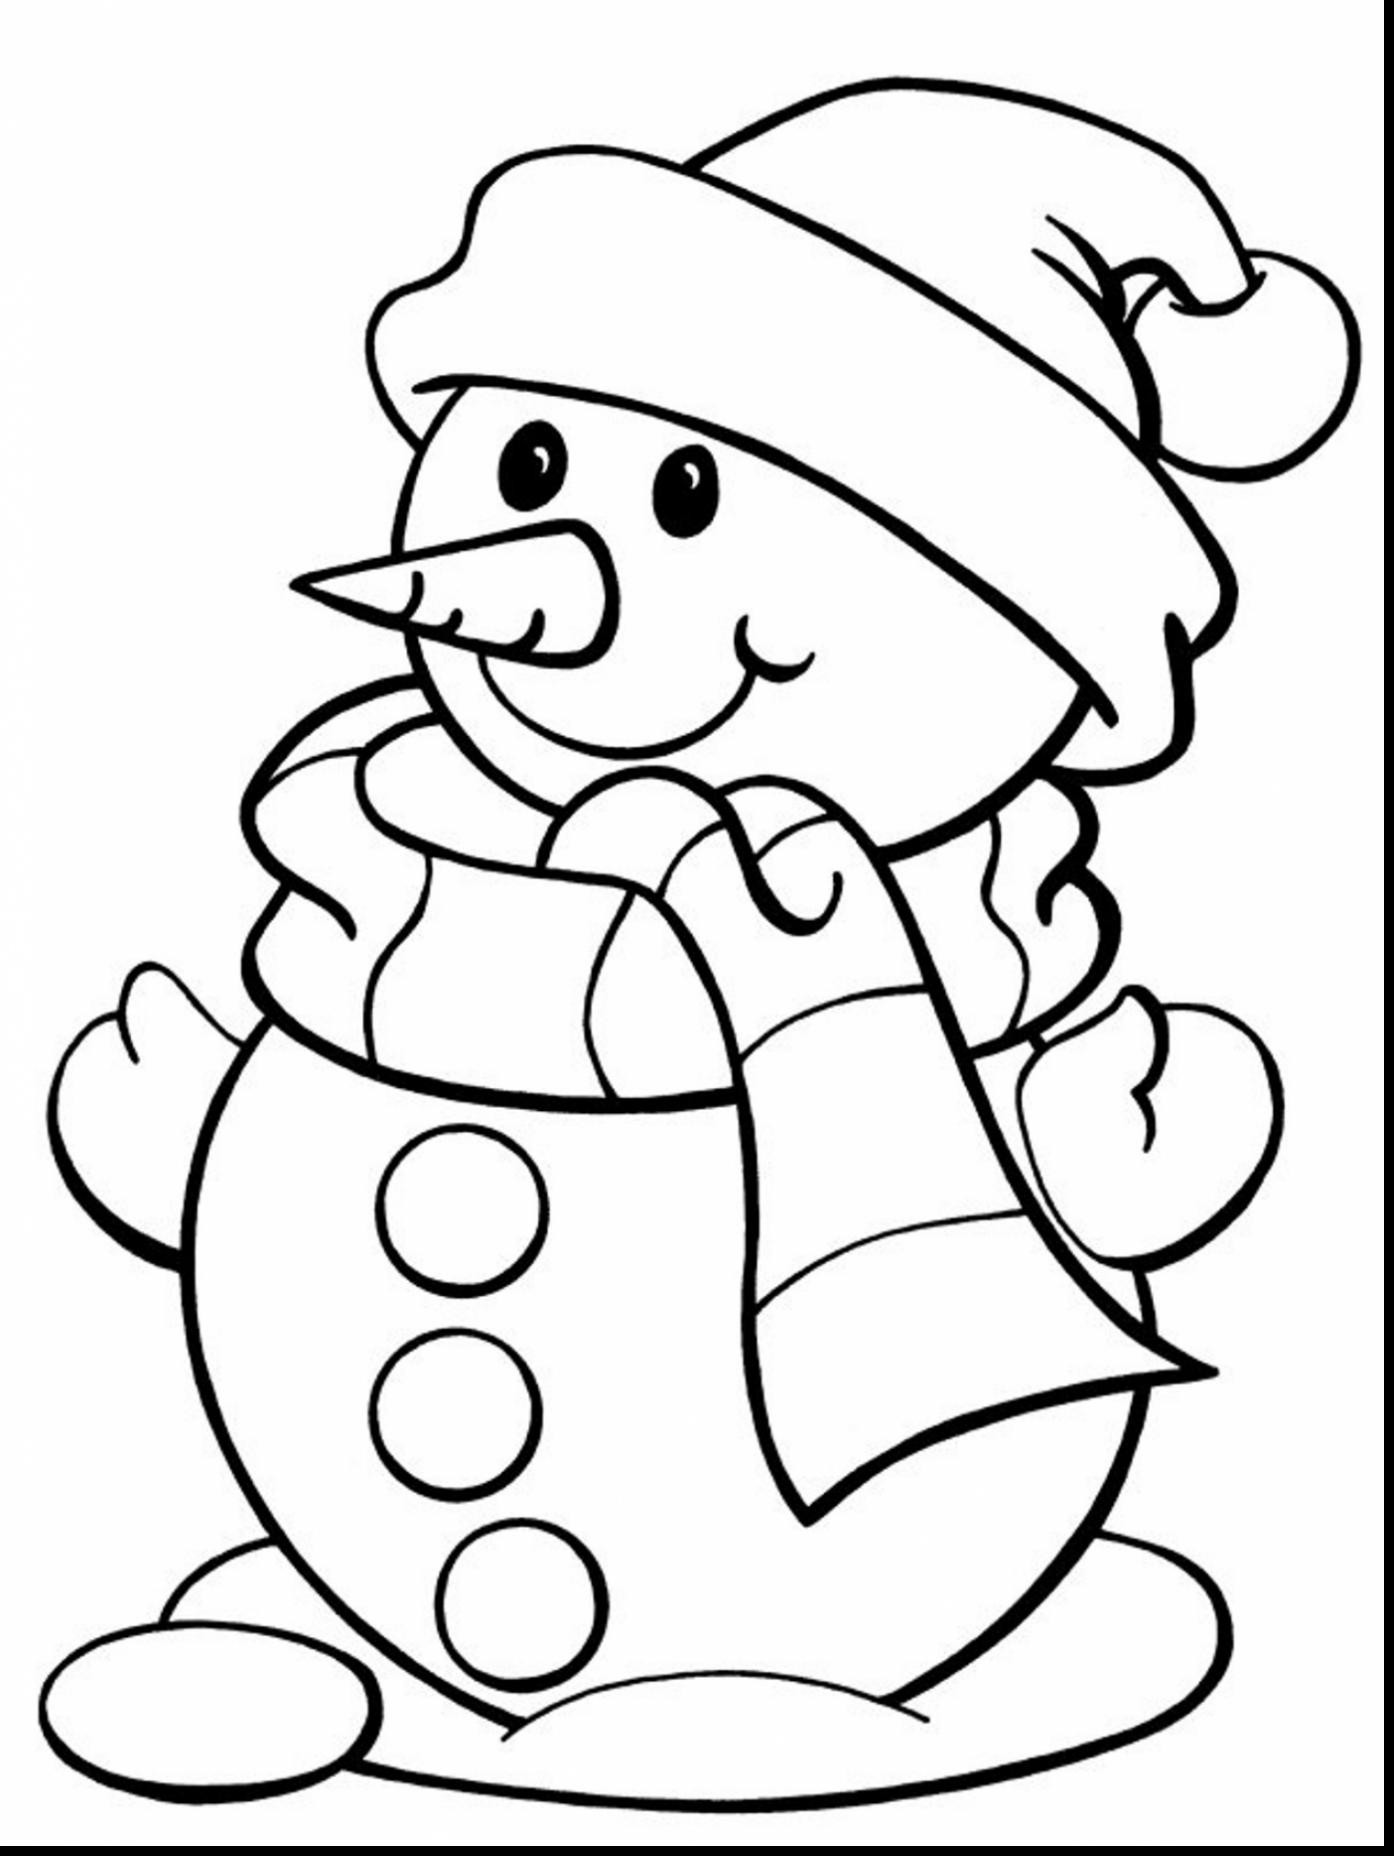 winter wonderland coloring pages winter wonderland coloring create a printout or activity wonderland coloring pages winter